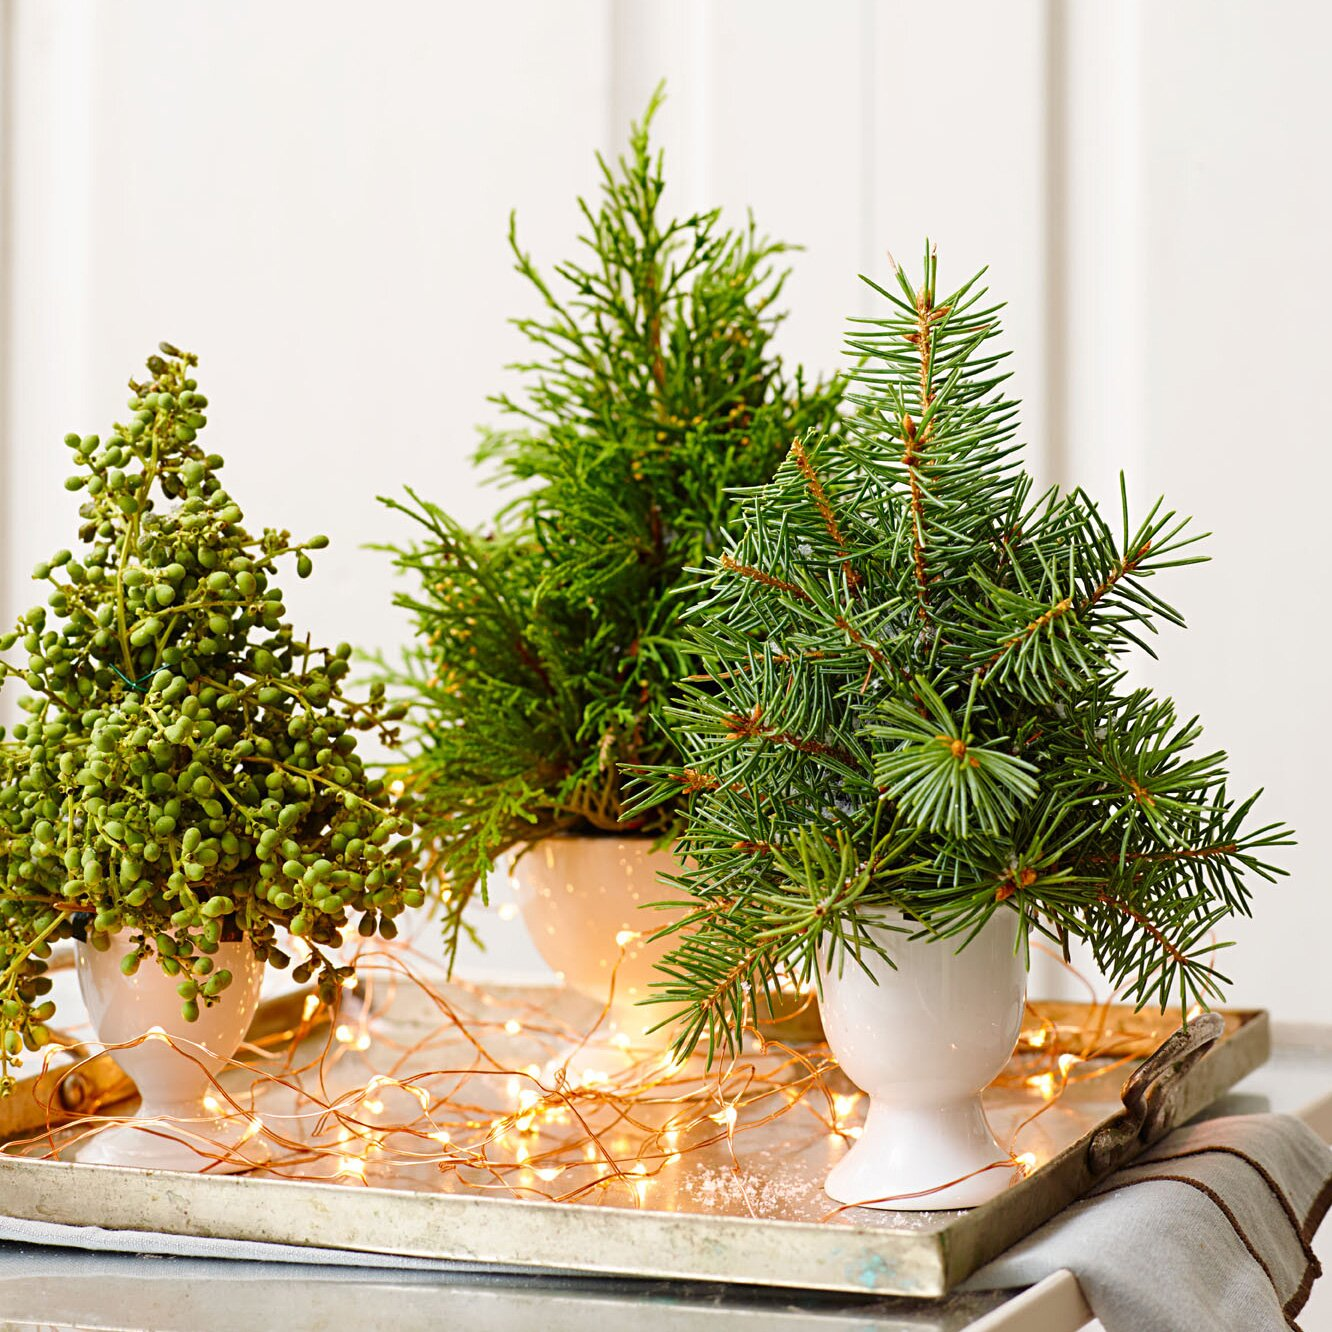 50 Quick and Easy Holiday Decorating Ideas